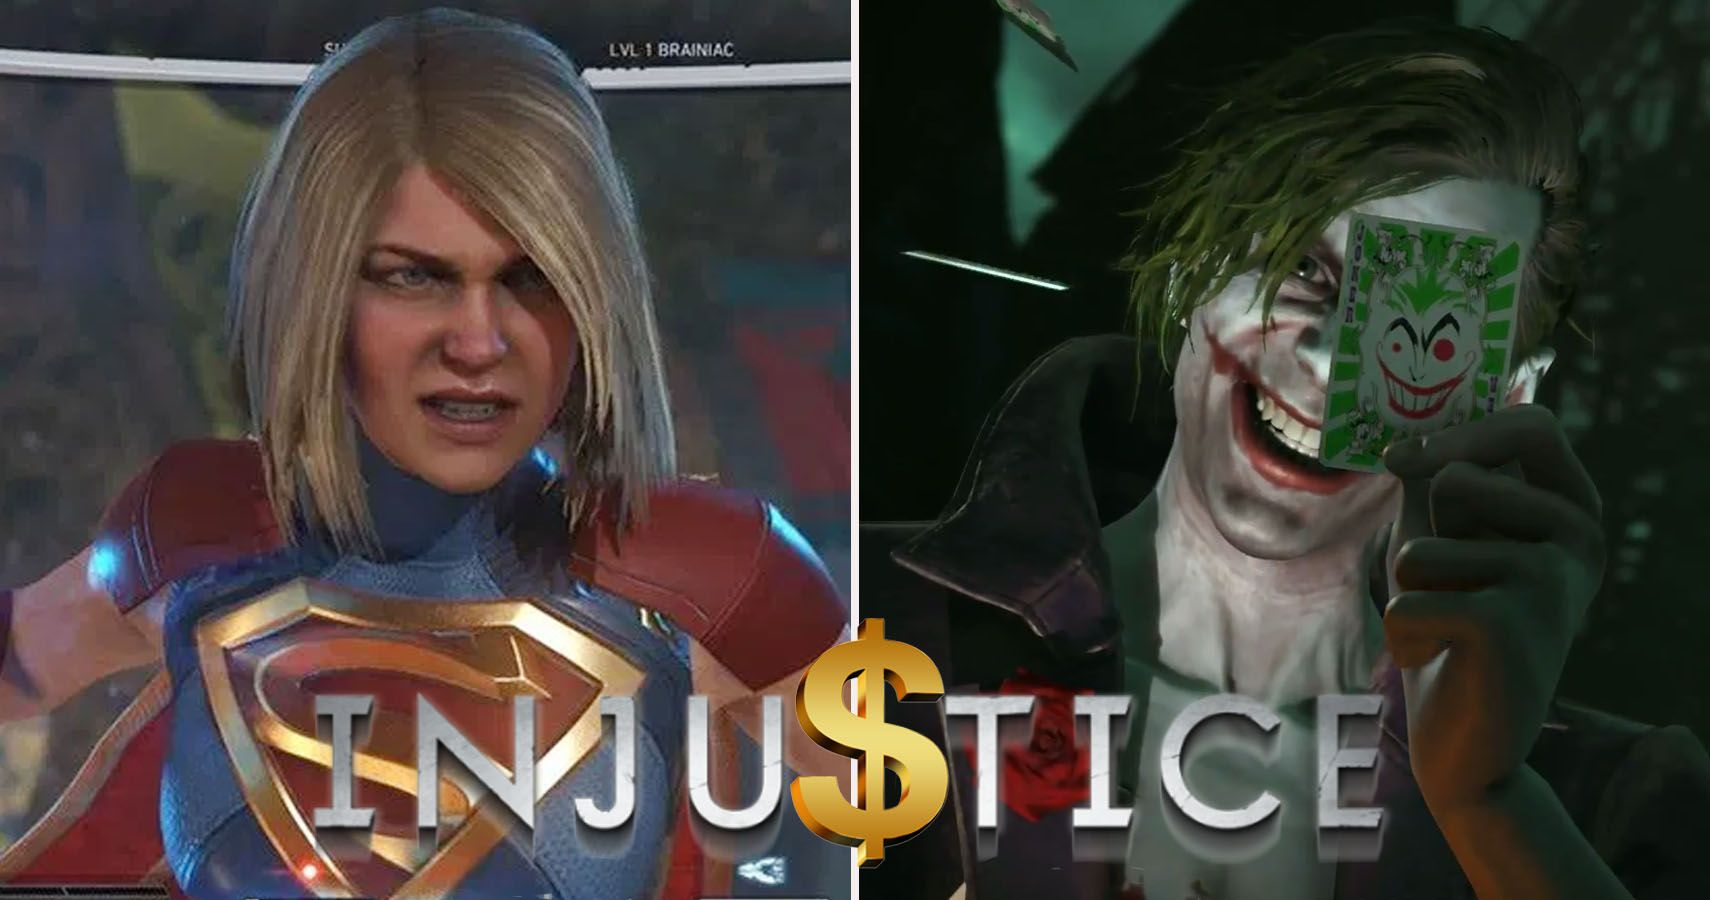 All The Ways Injustice 2 Says FU To Their Customers | TheGamer